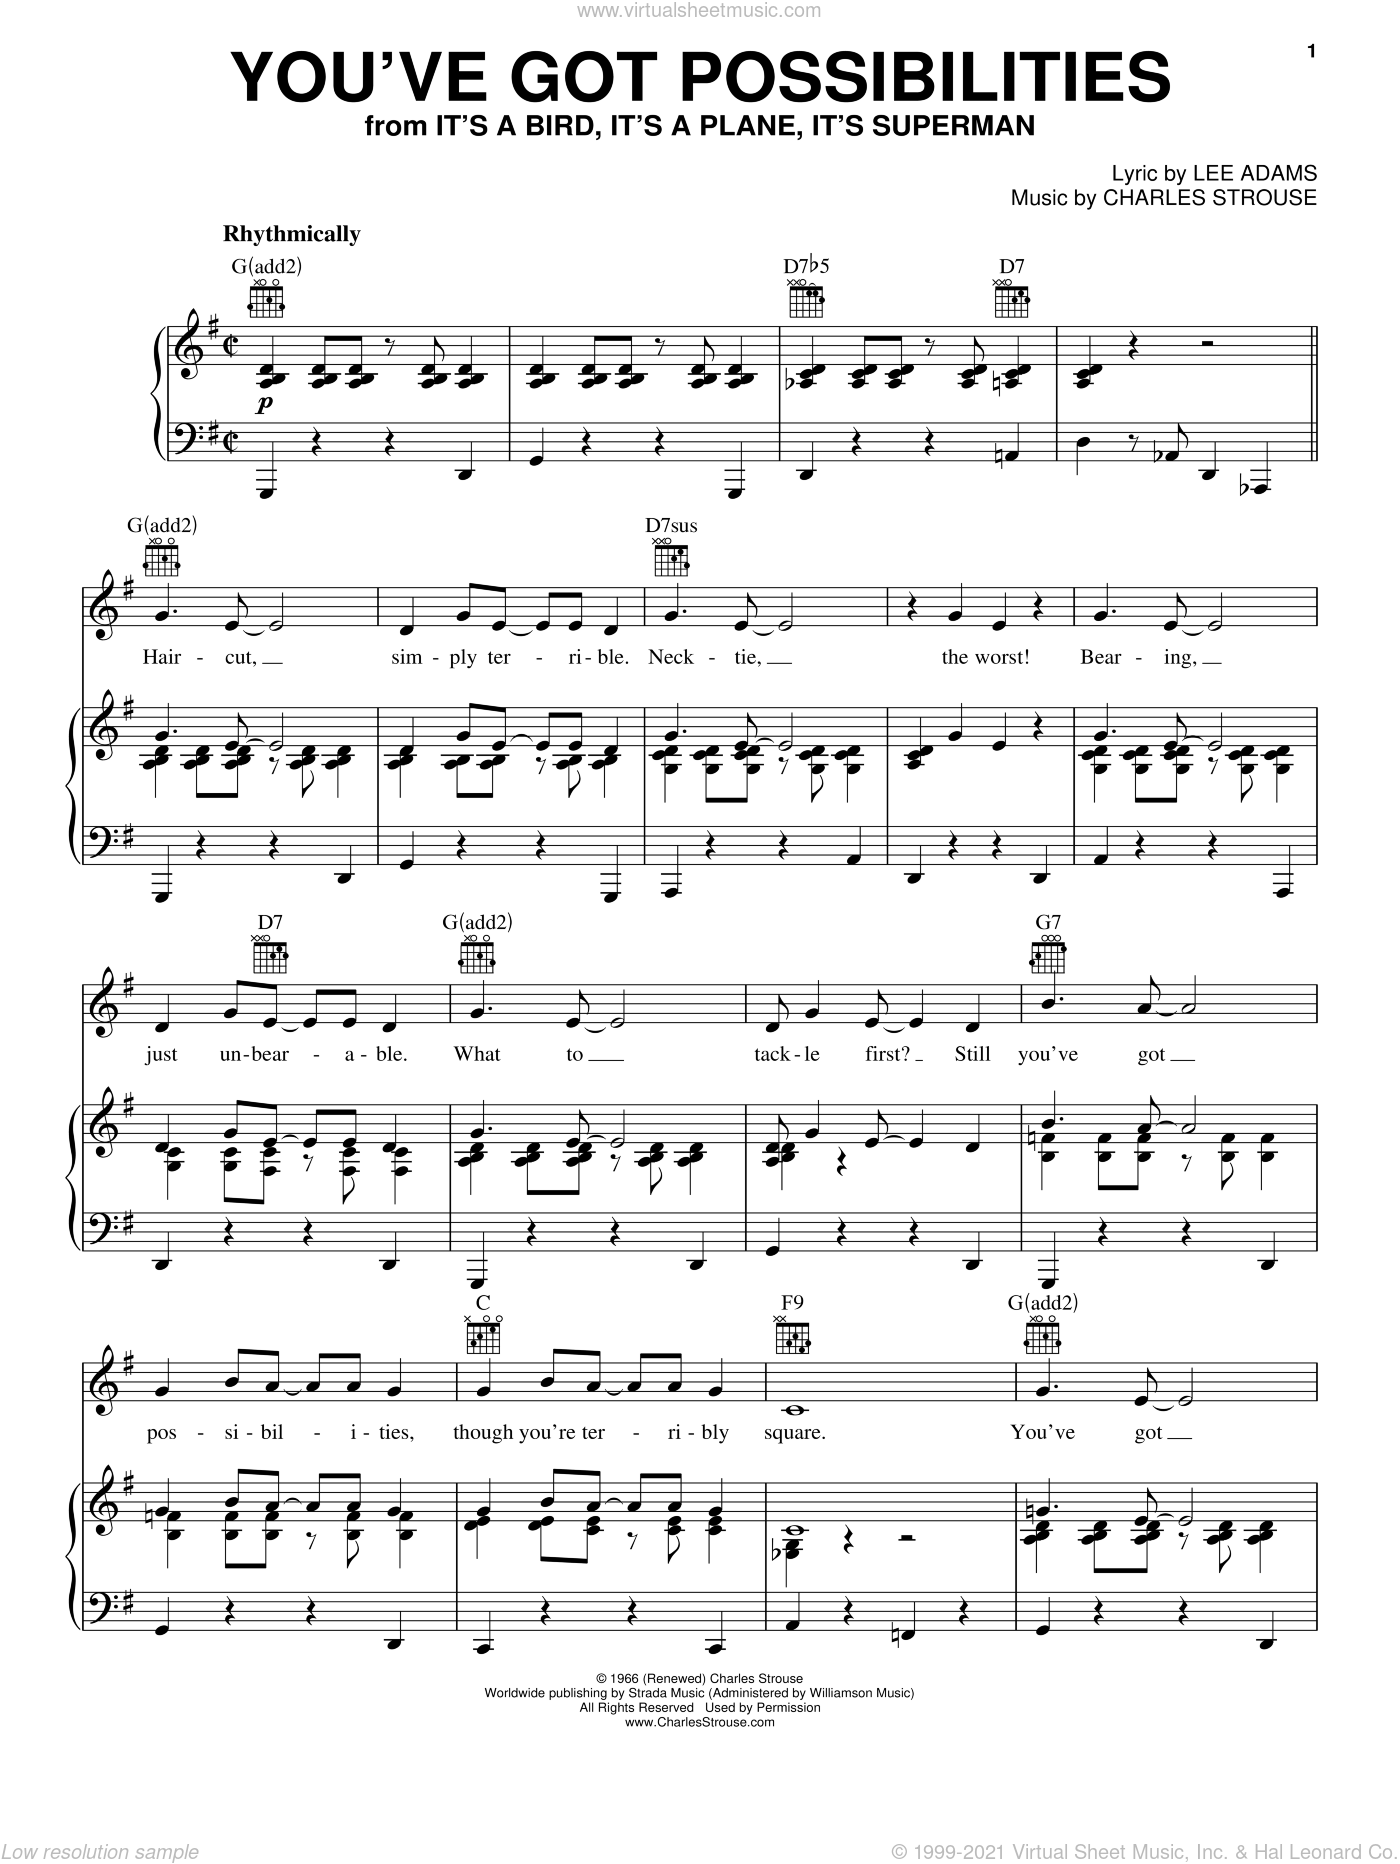 You've Got Possibilities sheet music for voice, piano or guitar by Lee Adams